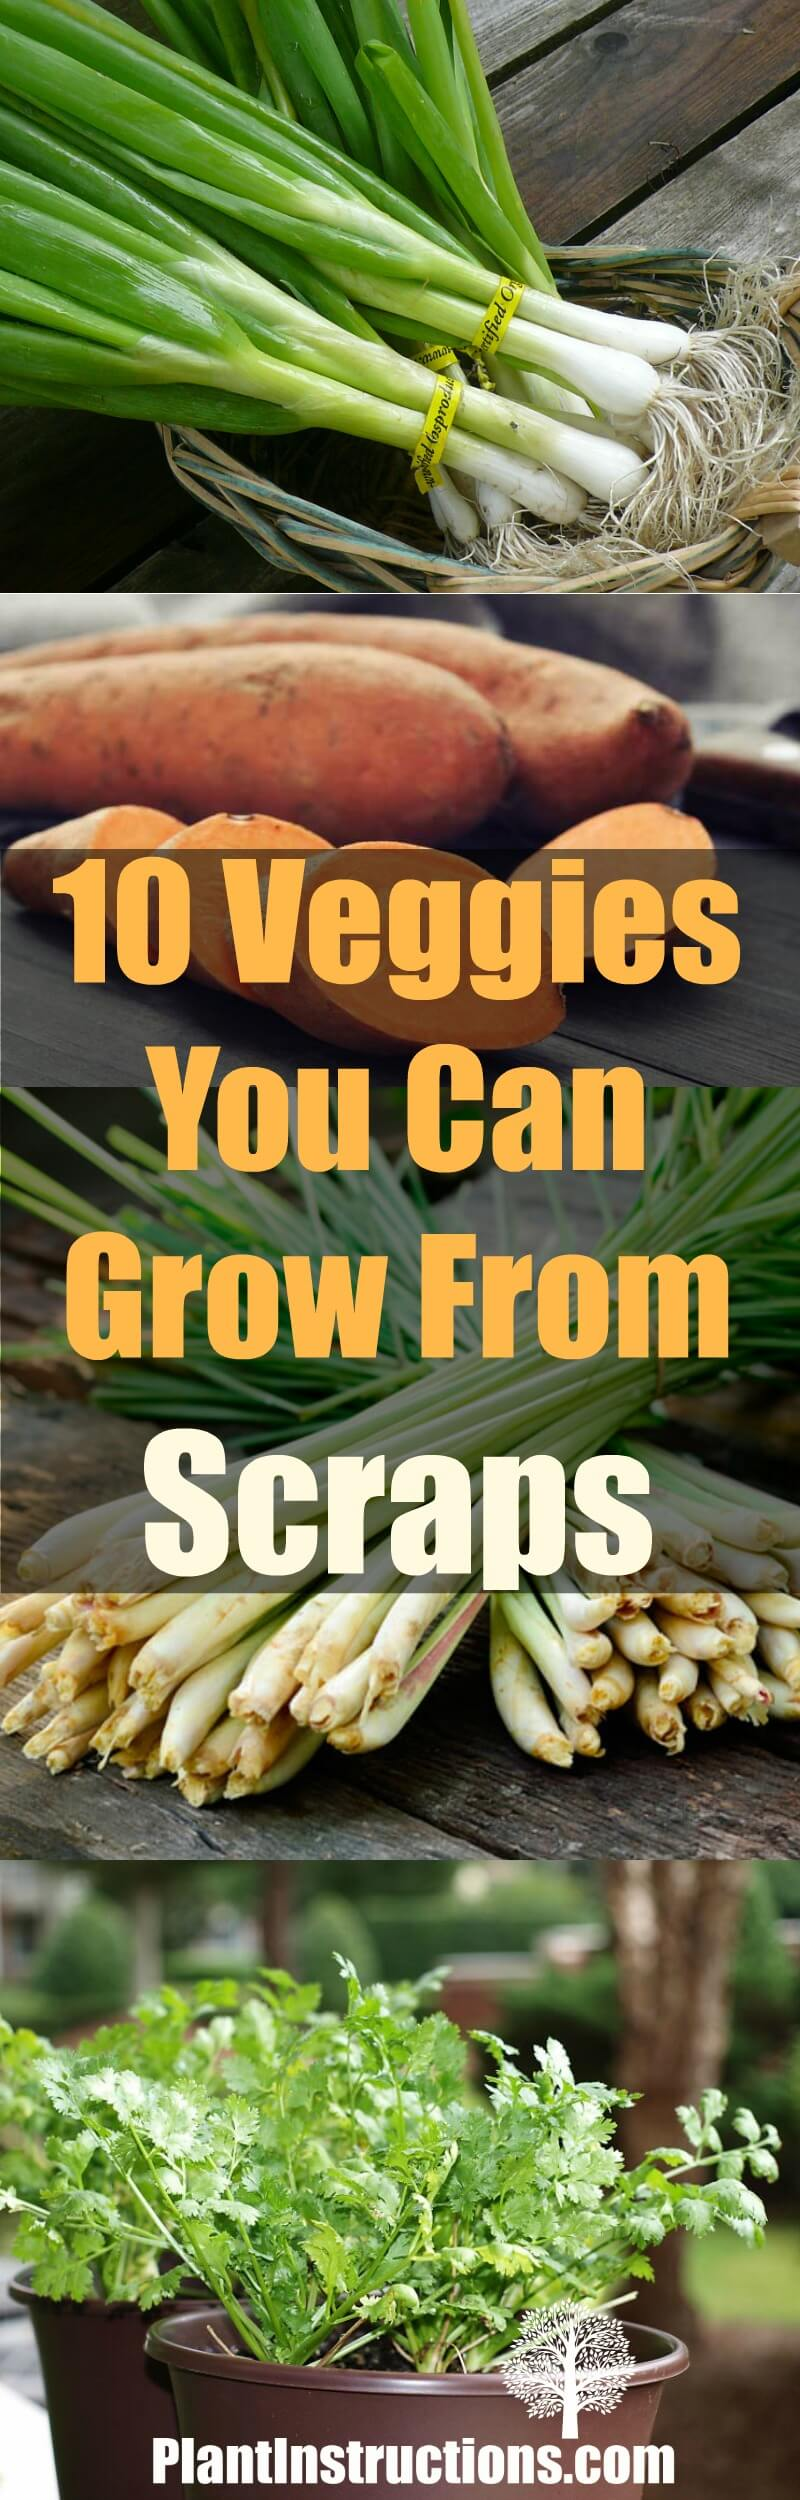 10 Veggies You Can Grow From Scraps - Plant Instructions Growing Vegetables From Scraps